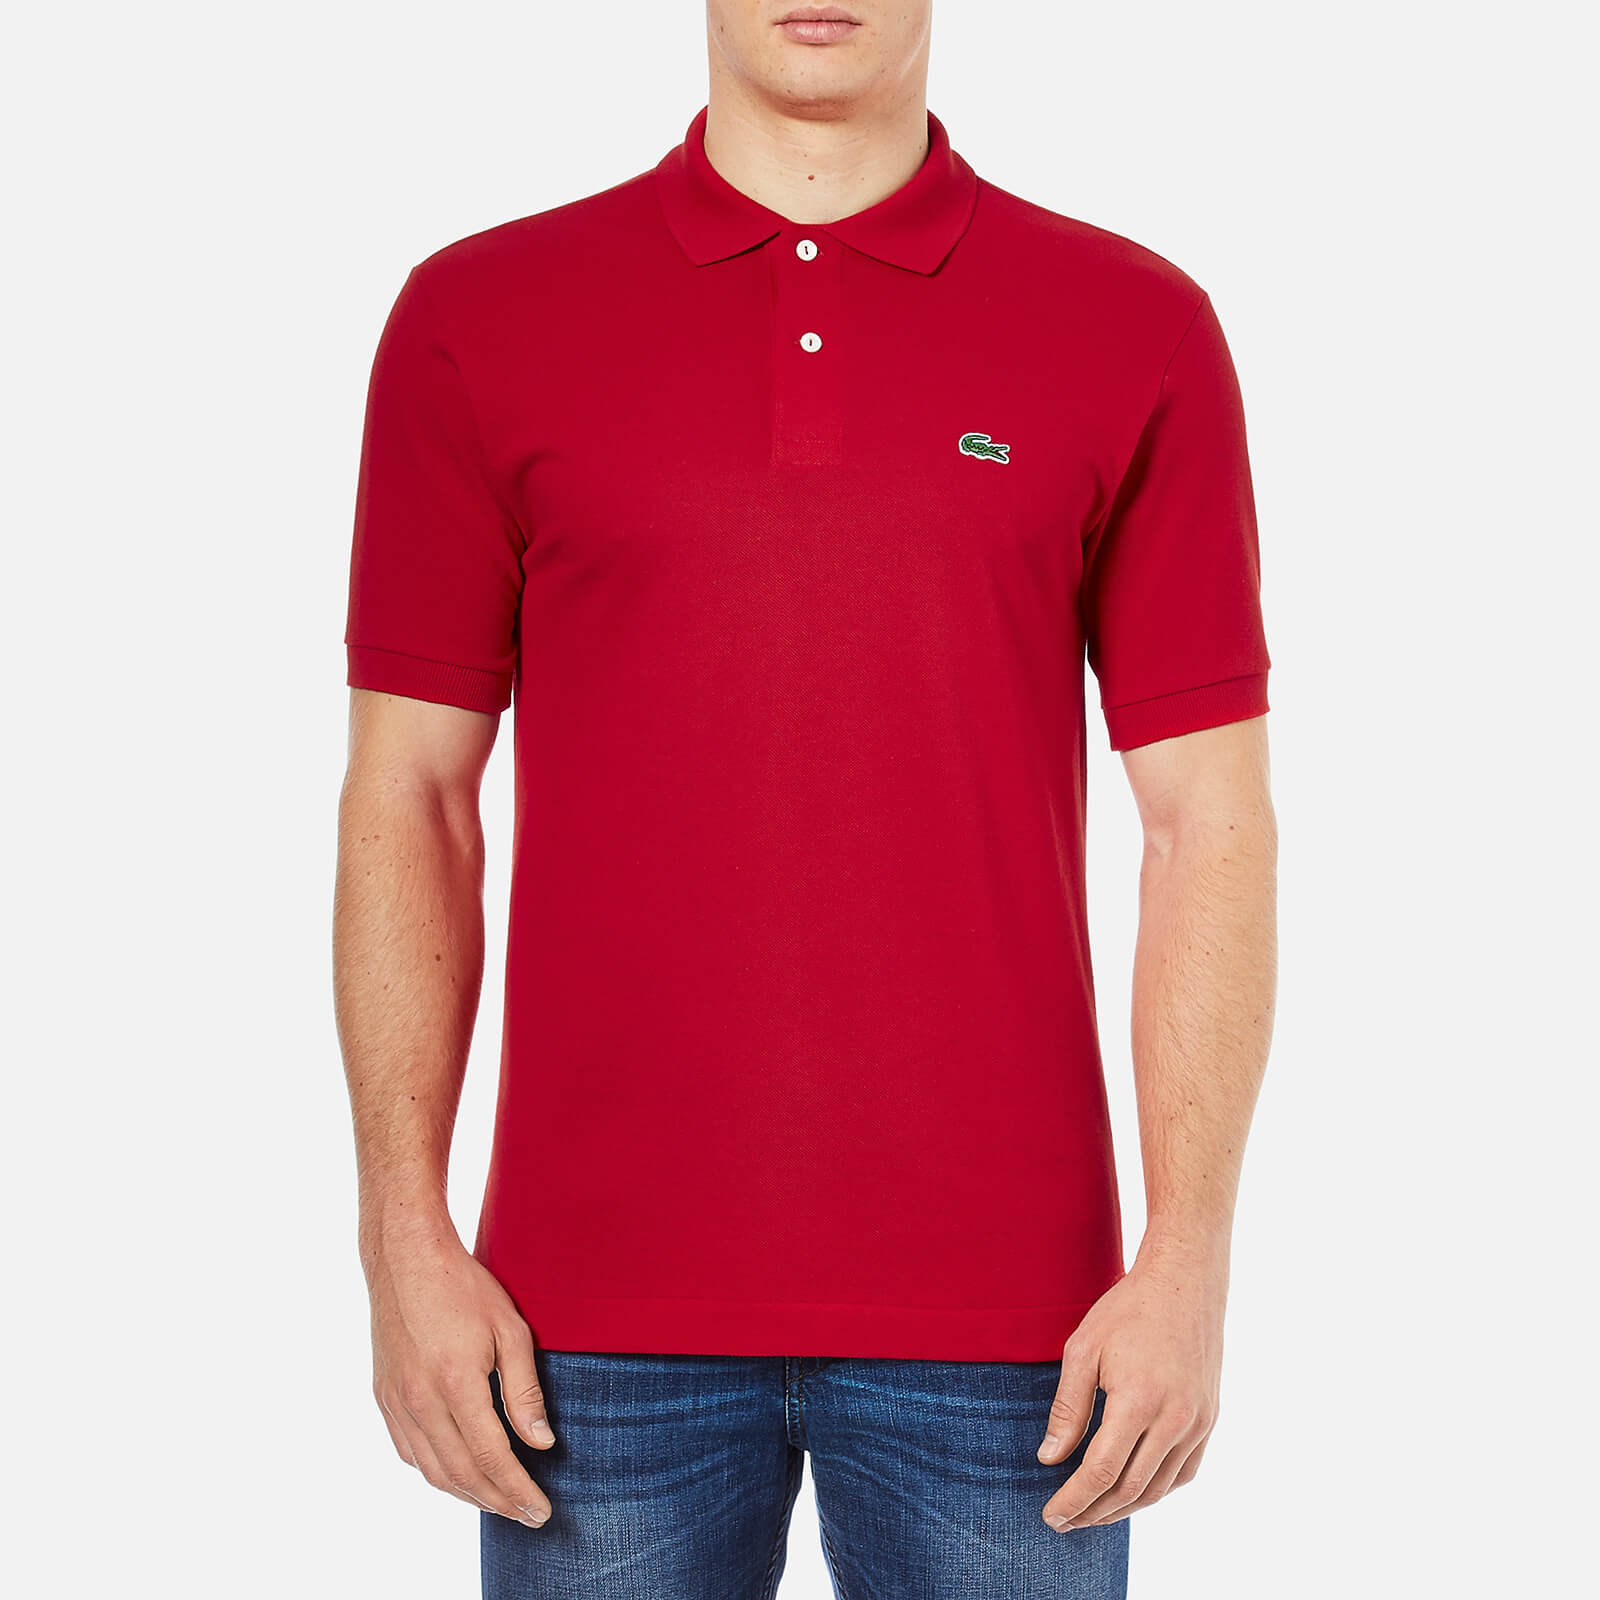 ba85e6d5c87c8 Lacoste Men s Basic Pique Short Sleeve Polo Shirt - Red - Free UK Delivery  over £50